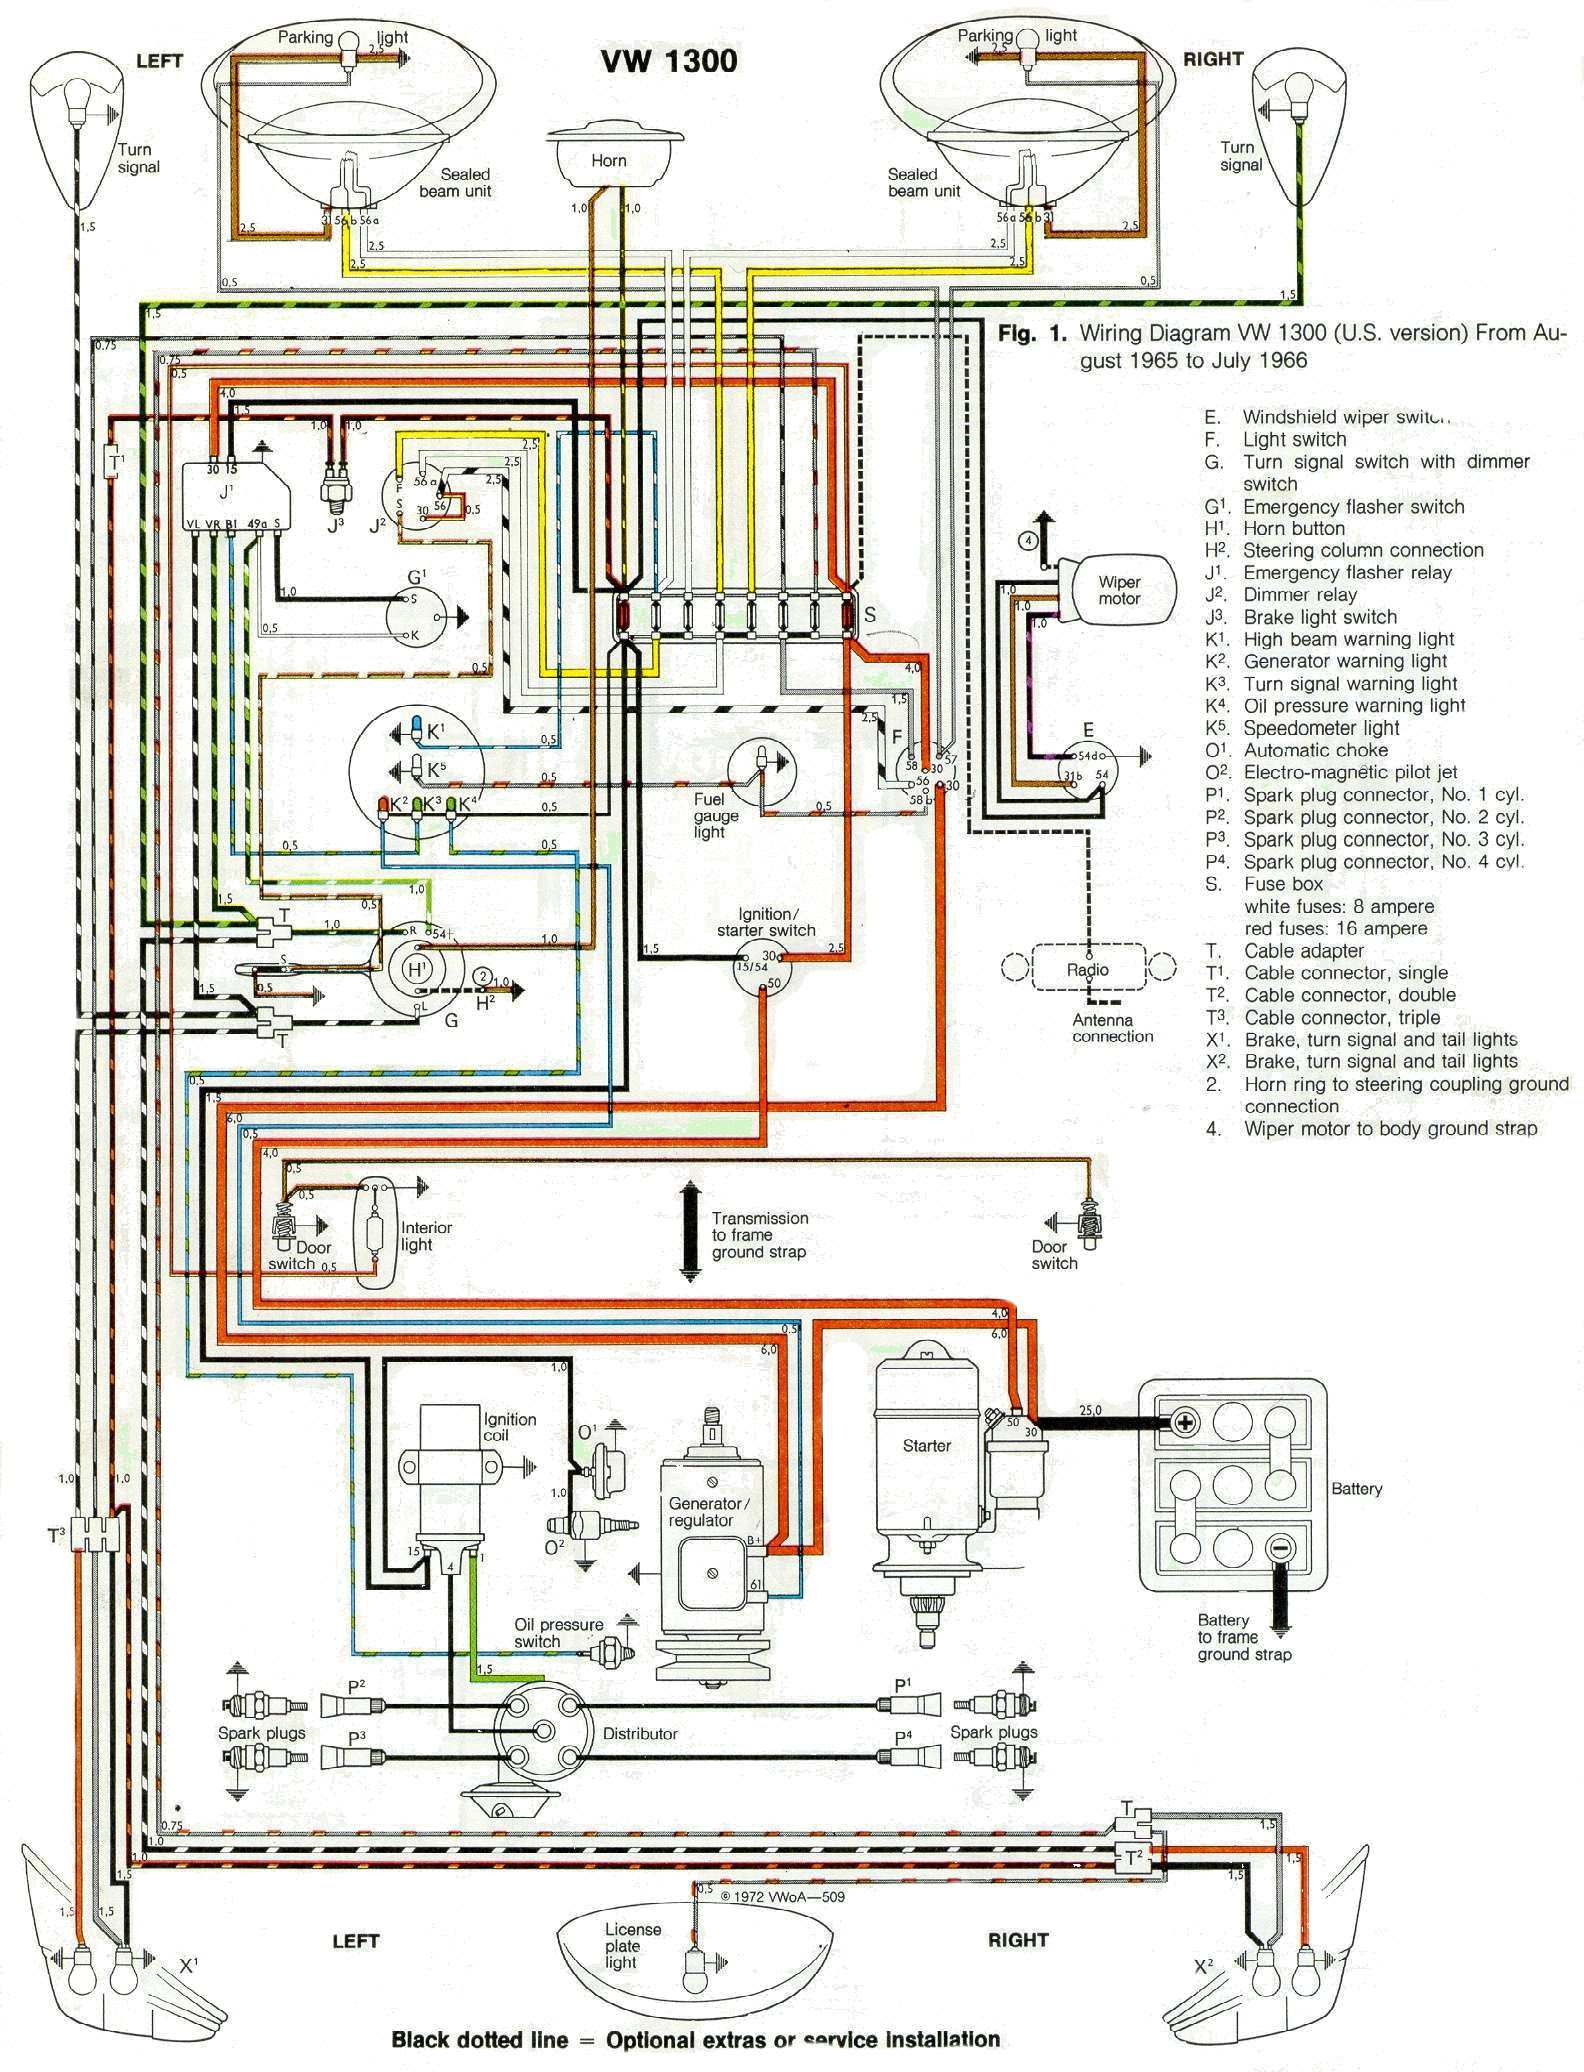 20 Luxury 1973 Vw Thing Wiring Diagram